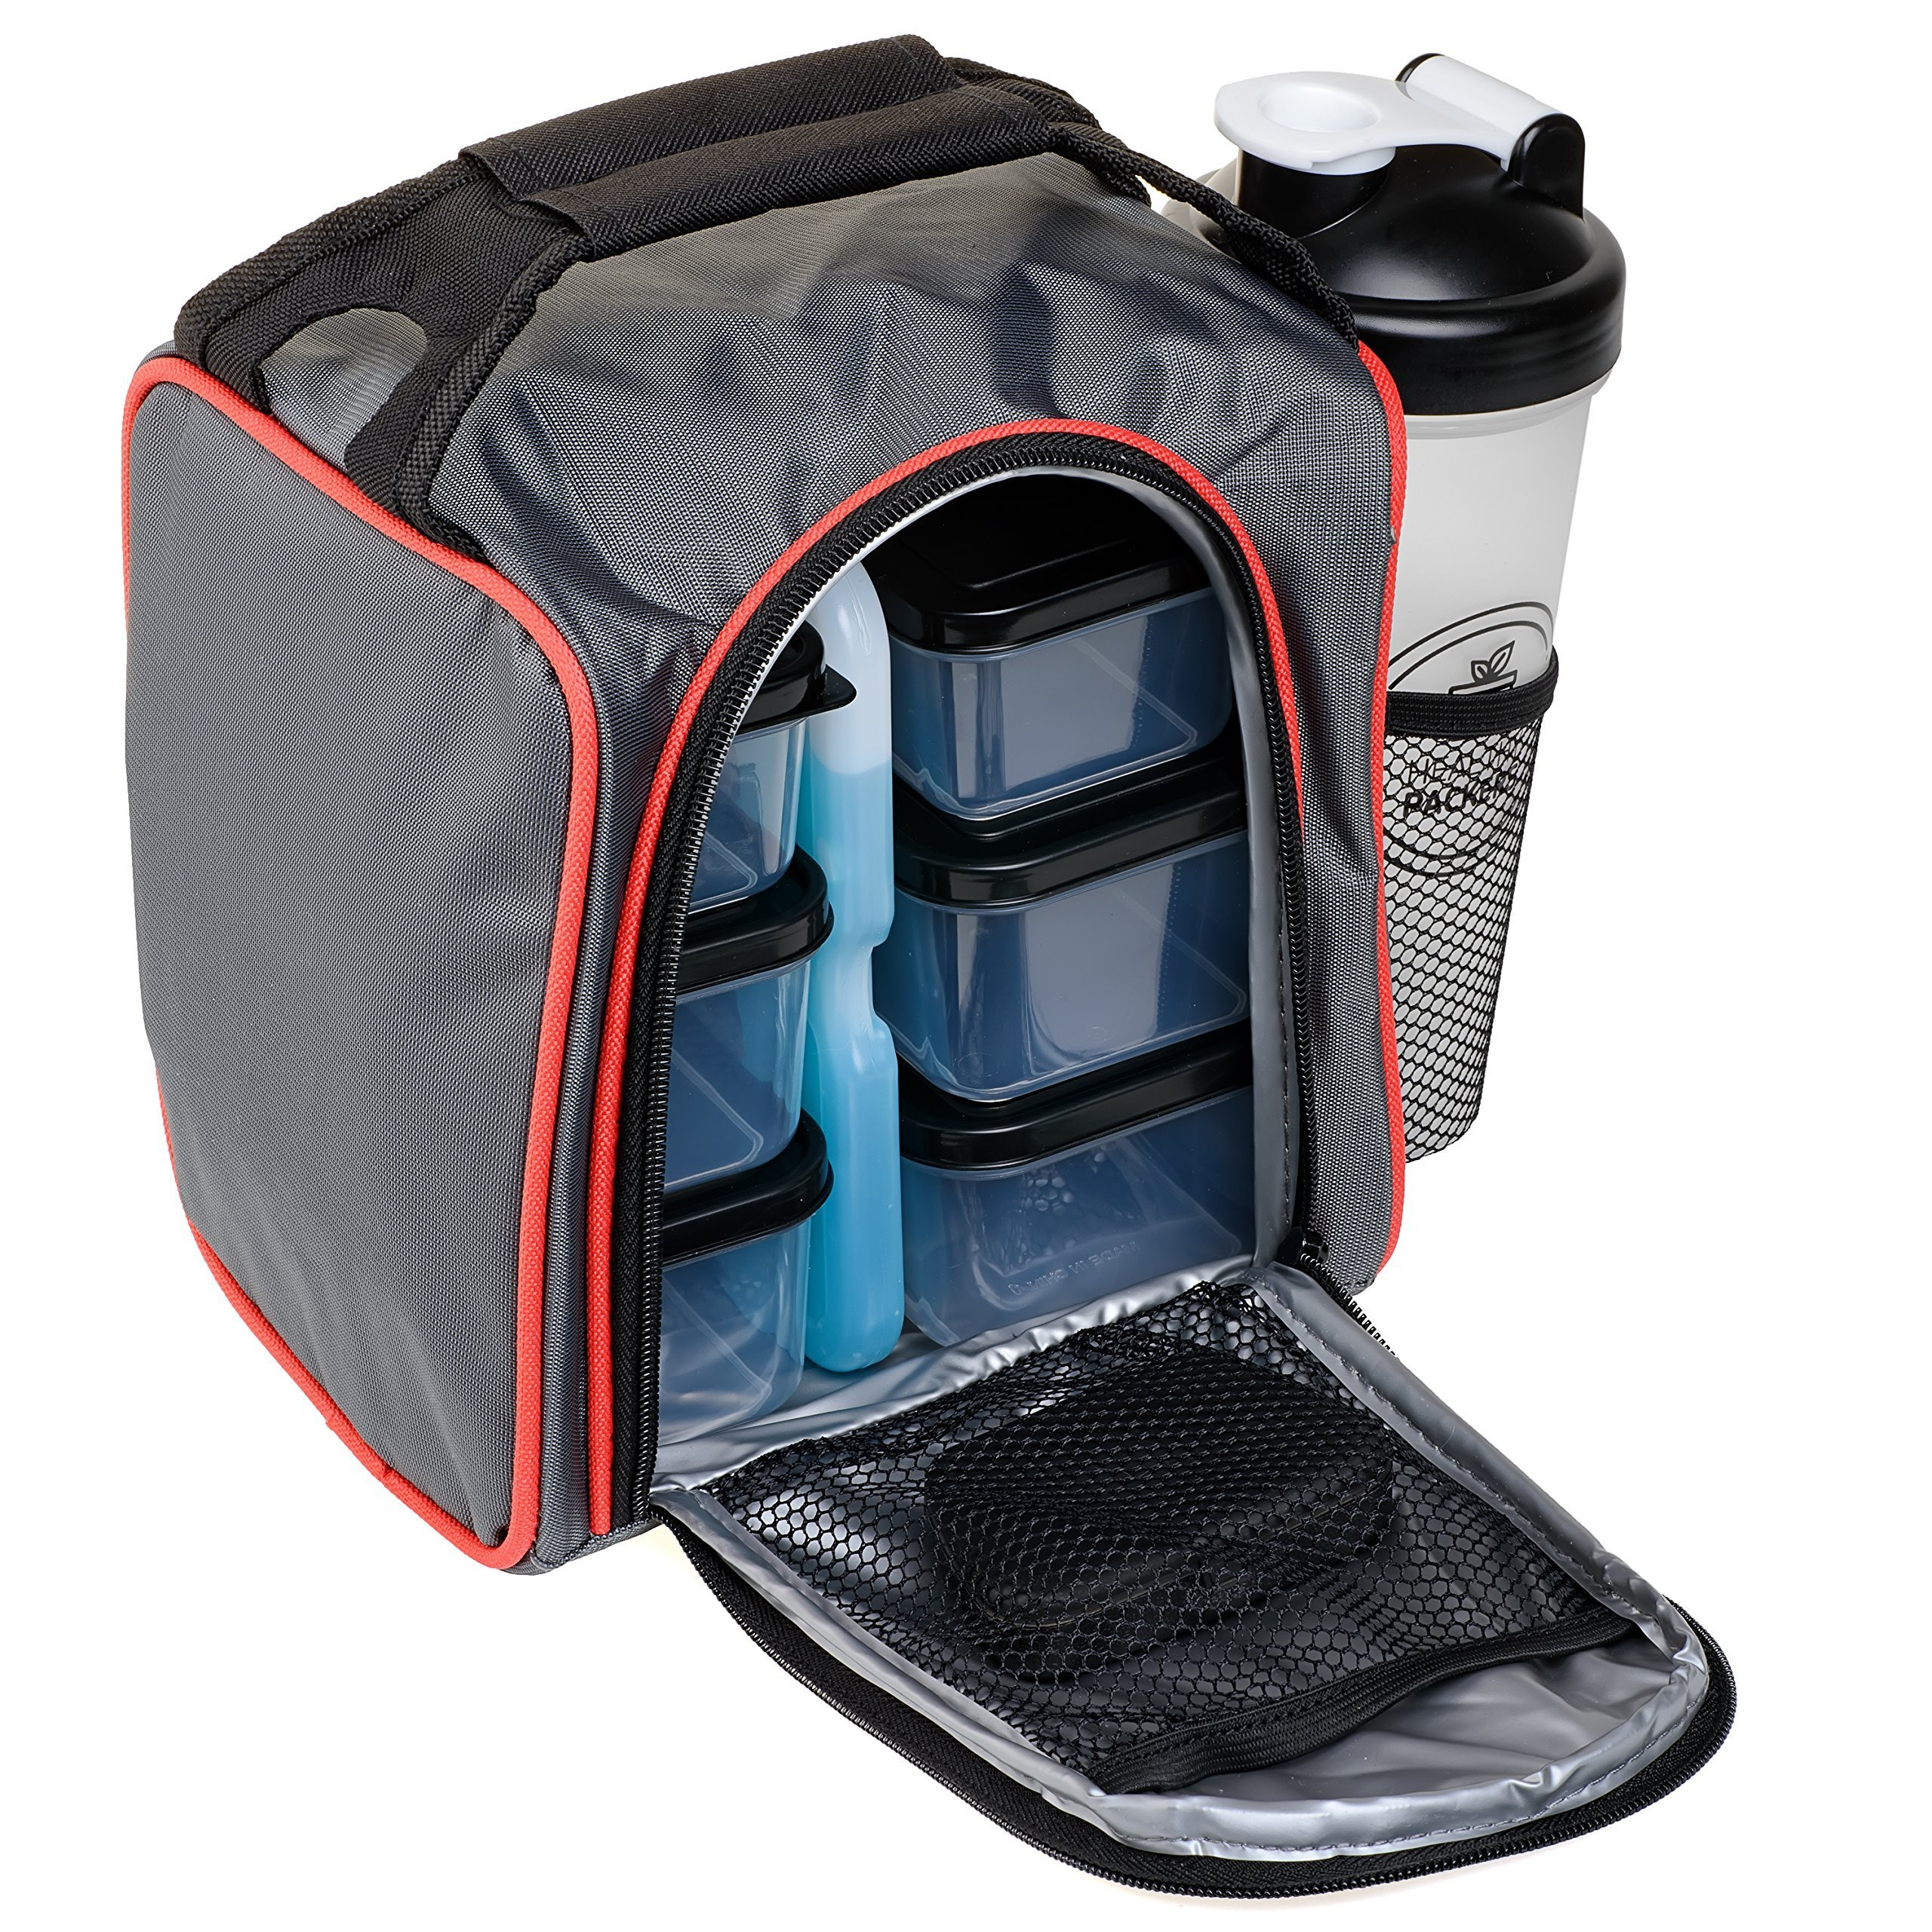 Deluxe Insulated Meal Prep Bag - Lunch Box with Portion Control Food Storage Containers + Ice Pack, Pill Box, Protein Shaker Bottle